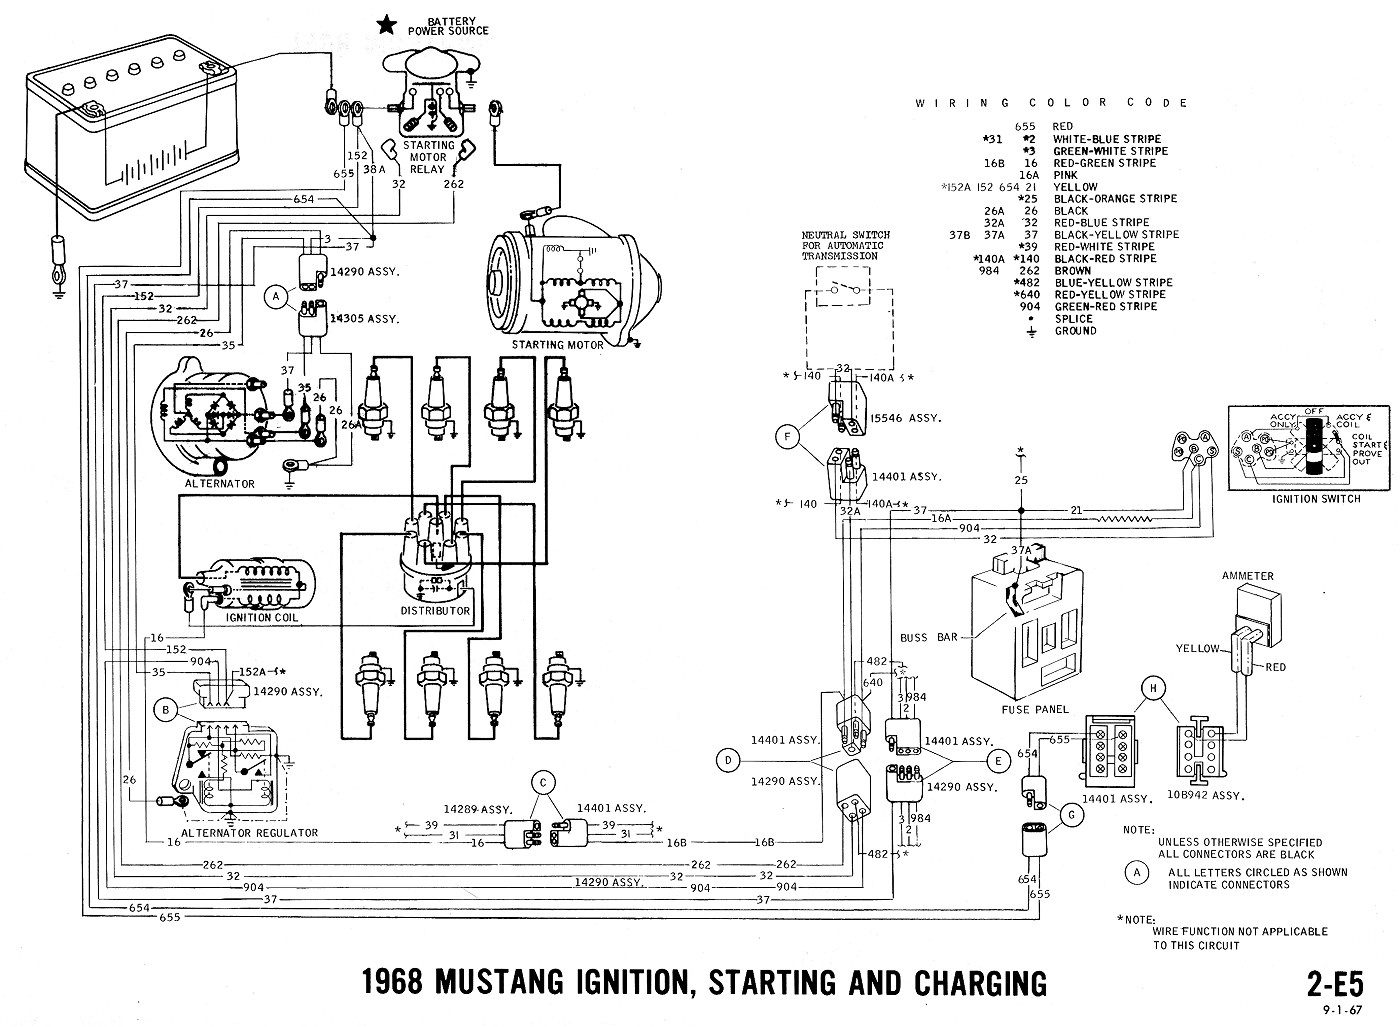 1968 Mustang Wiring Diagrams Evolving Software Tivo Charging Starting